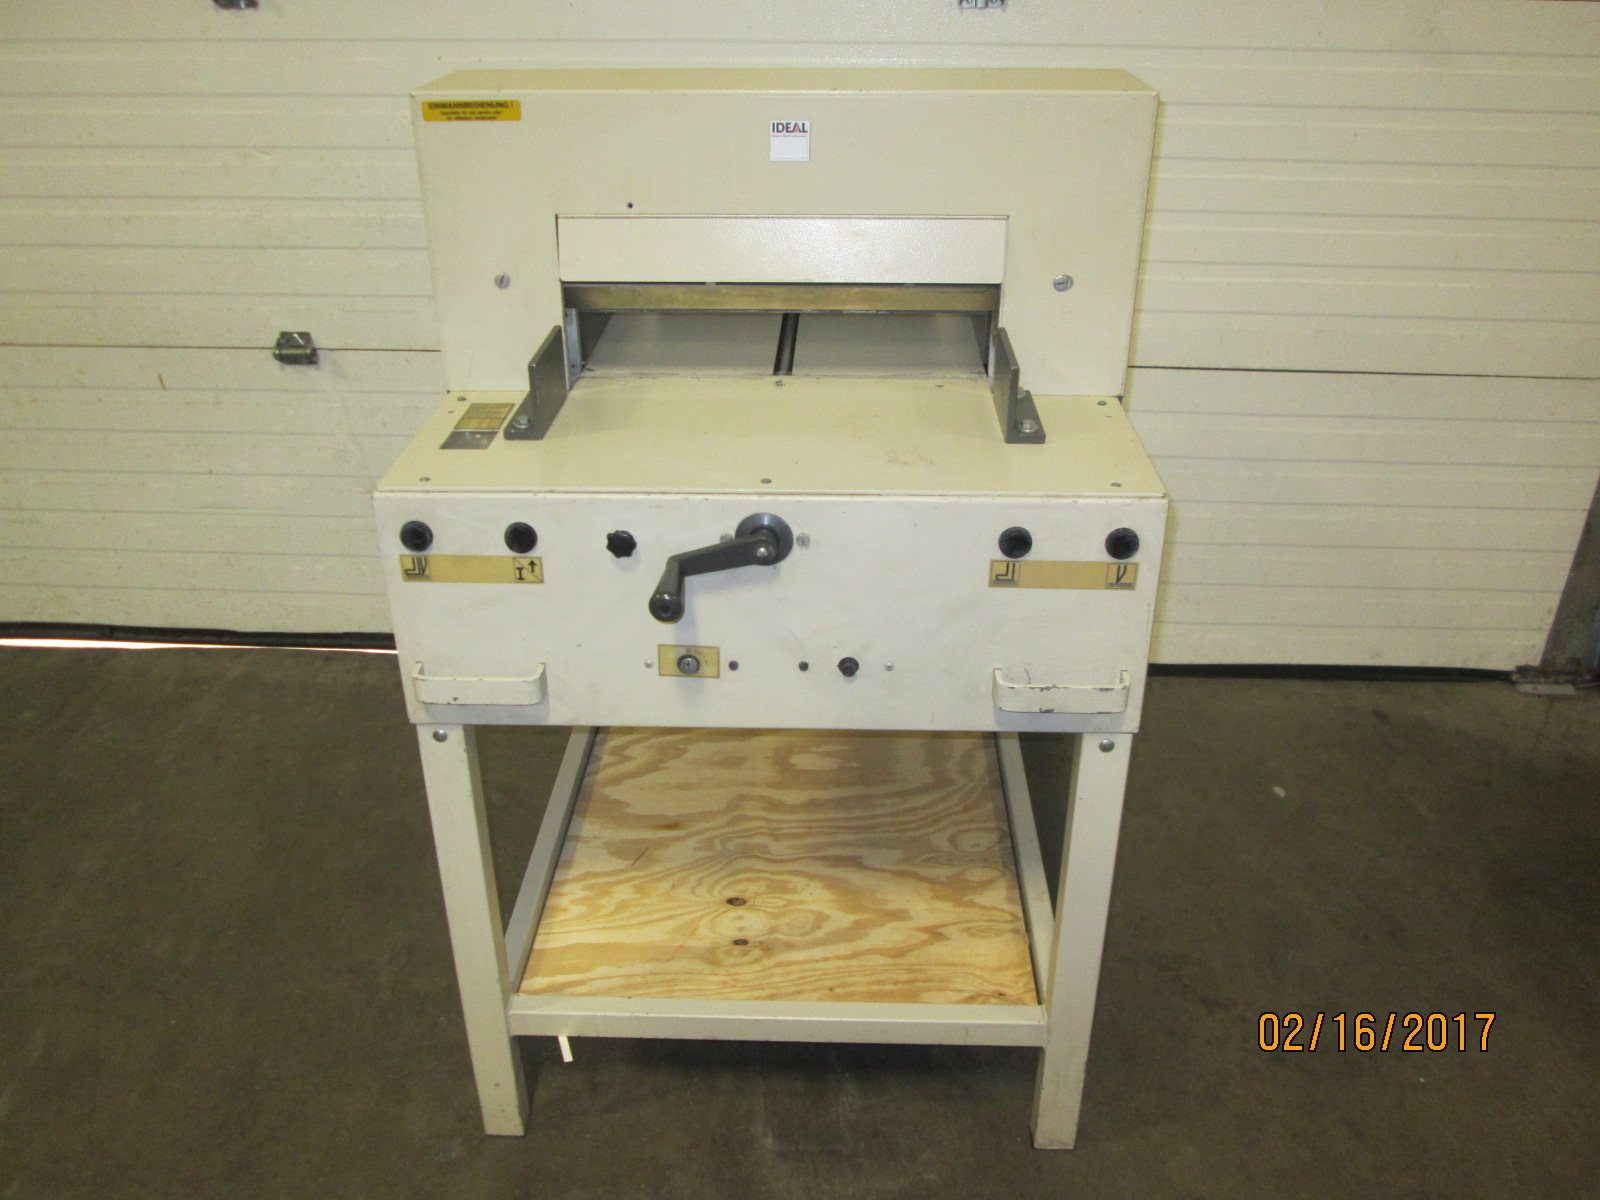 TRIUMP IDEAL CUTTER,XXX, SN# XXXXX, YEAR: XXXX 85